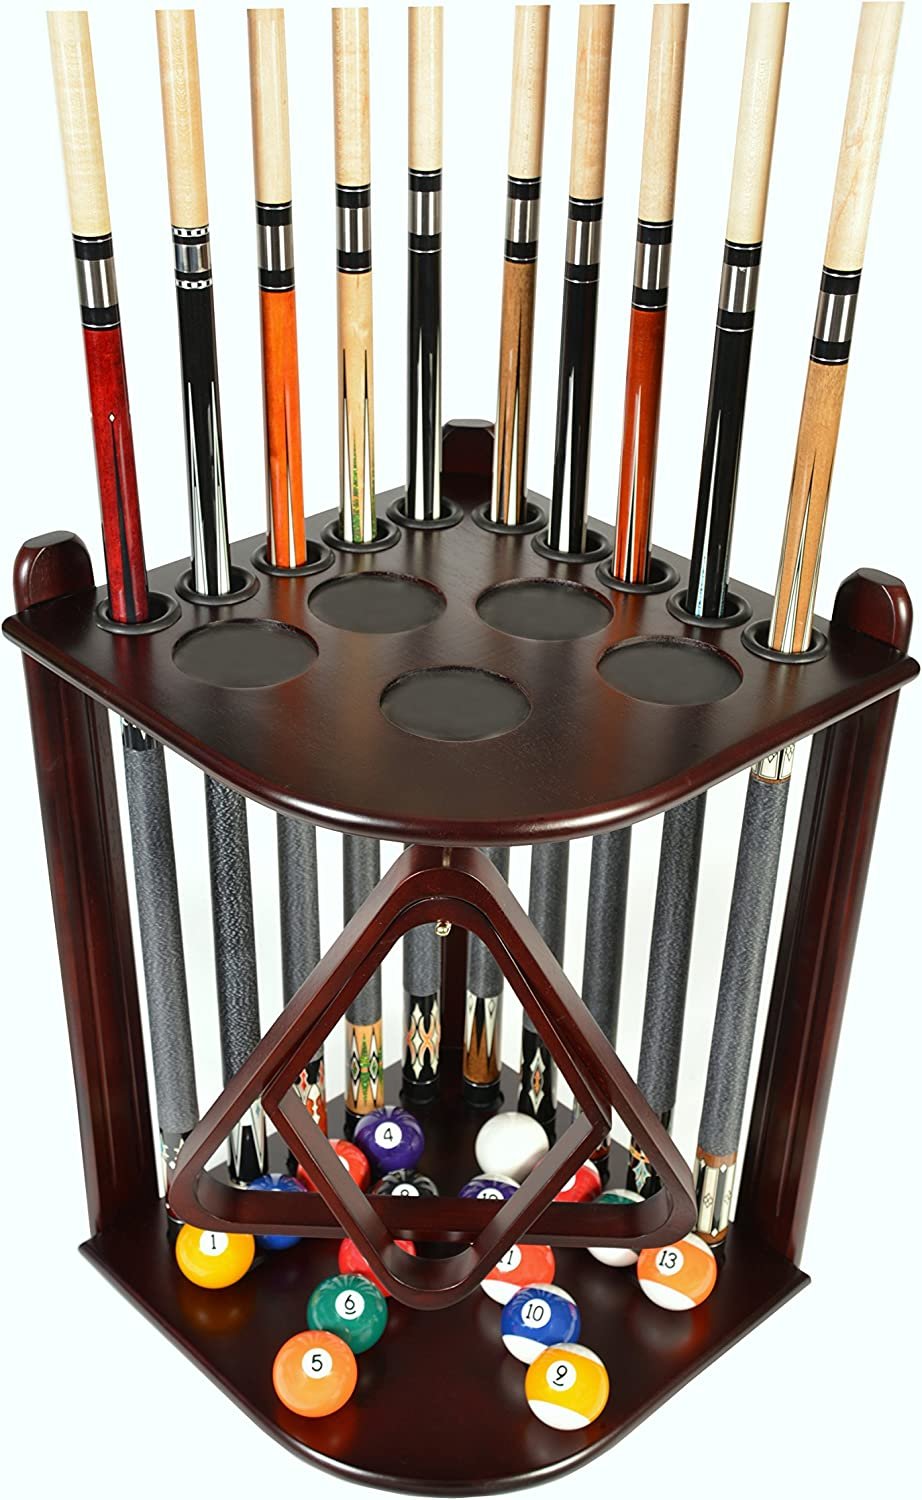 Cue Rack Only - 10 Pool - Billiard Stick & Ball Floor Rack - Holder Choose Mahogany, Black or Oak Finish